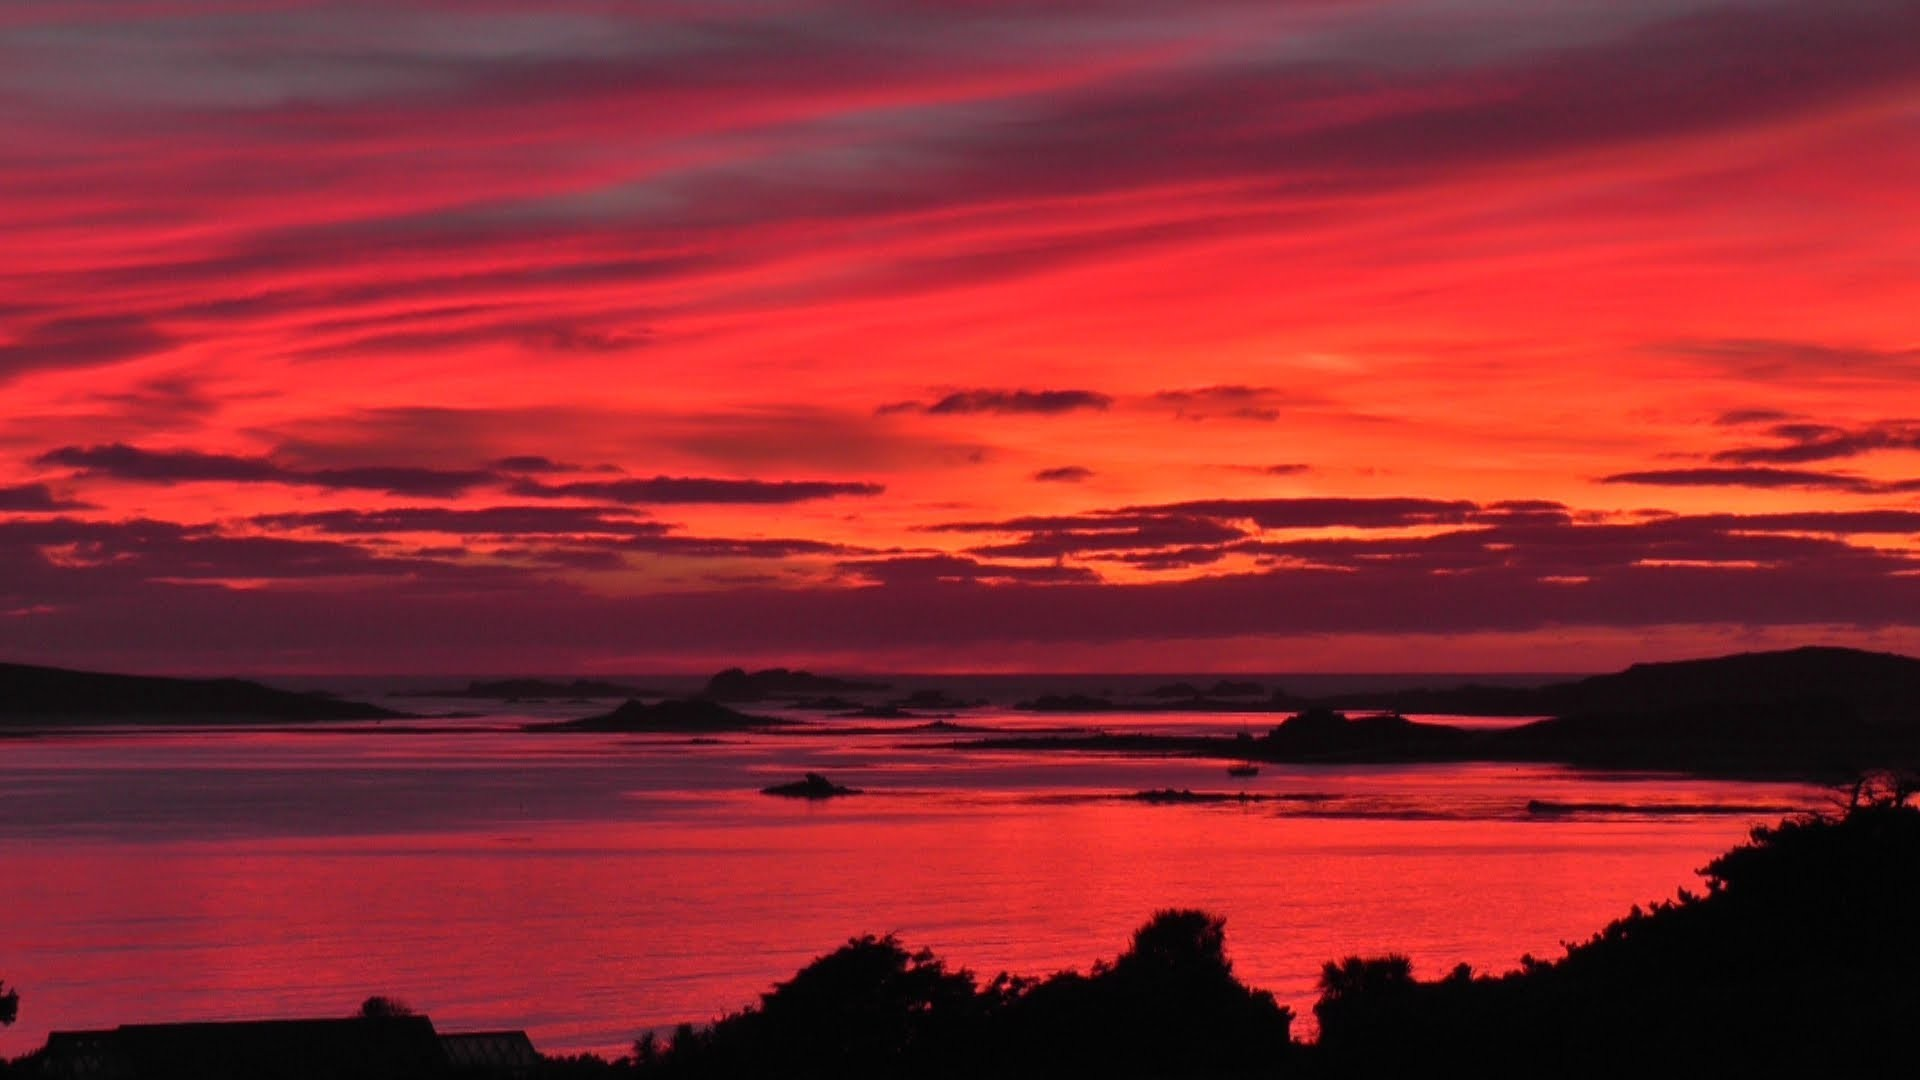 1920x1080 The Most Beautiful Sunset and Red Sky in The World Ever - Isles of Scilly -  YouTube